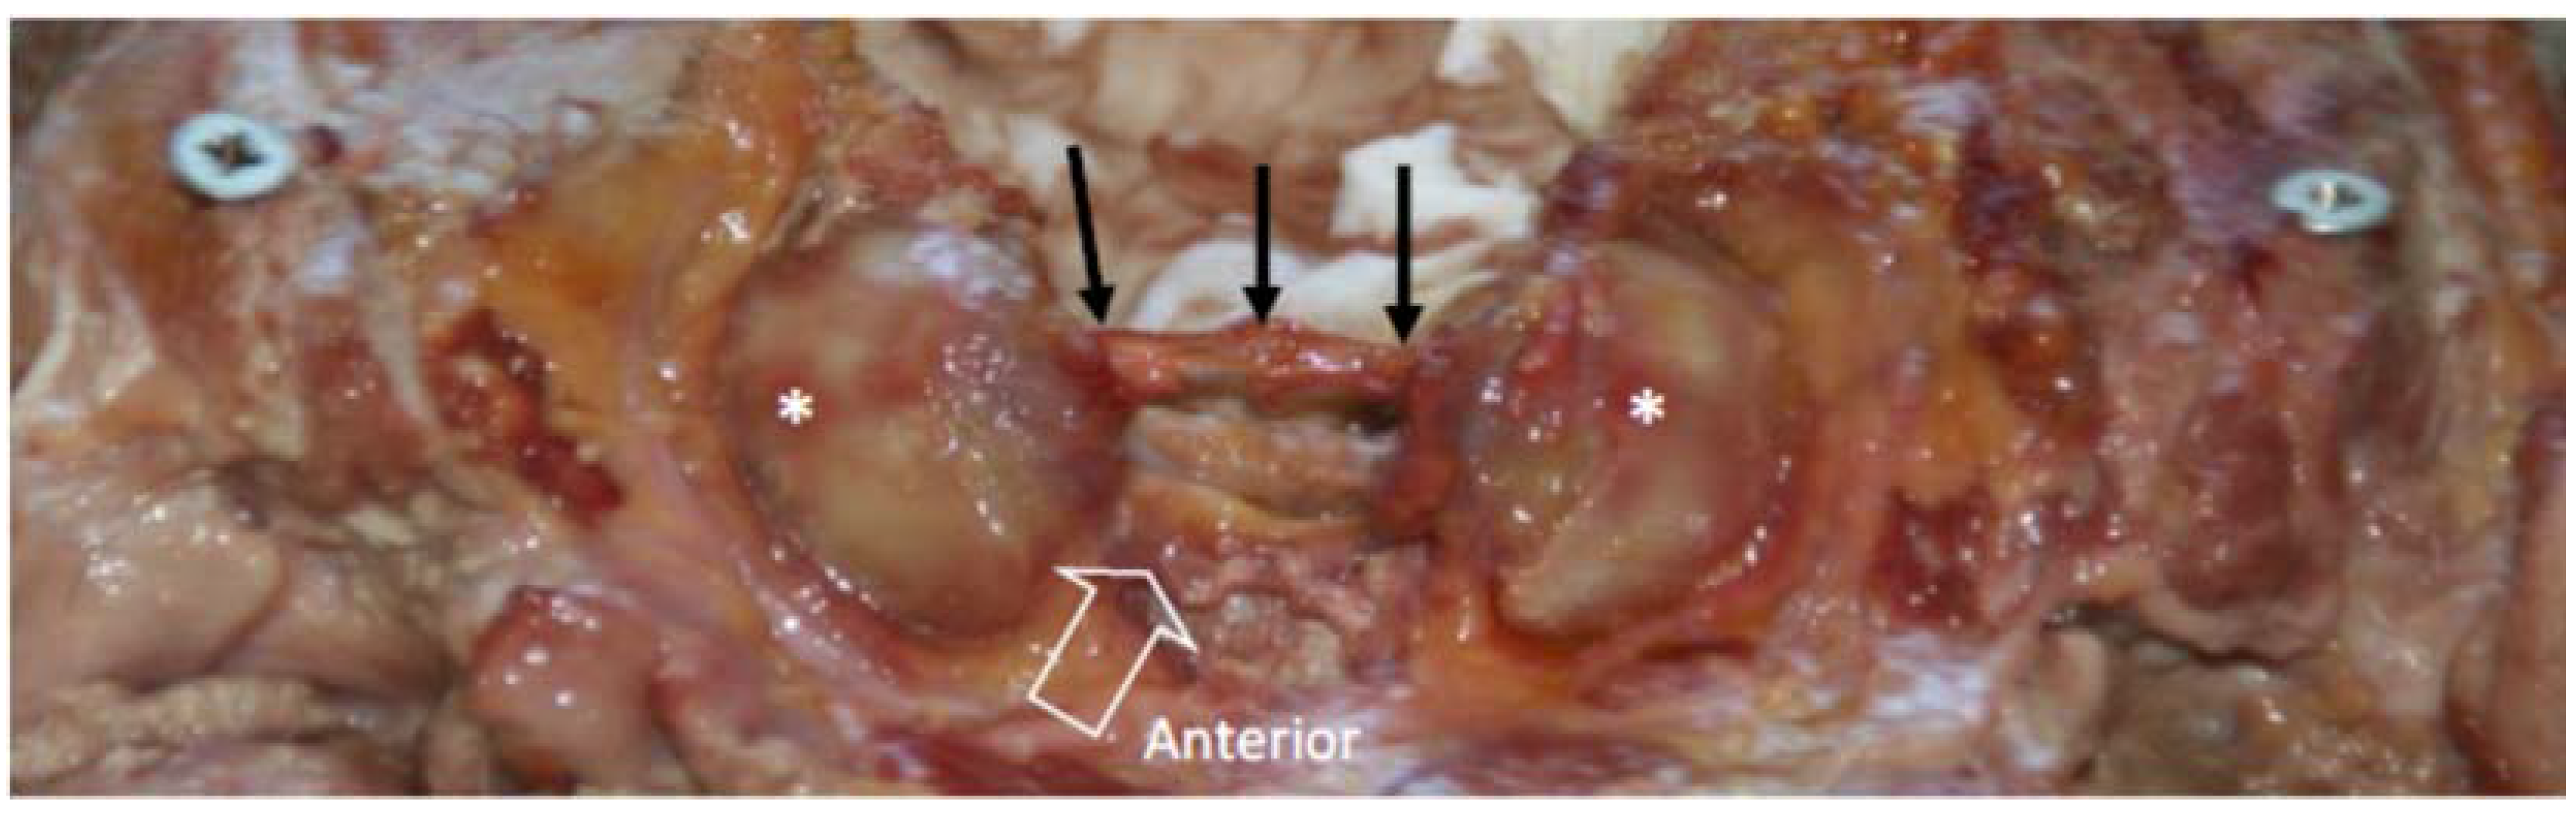 JFMK   Free Full-Text   Variability of Upper Cervical Anatomy: A ...